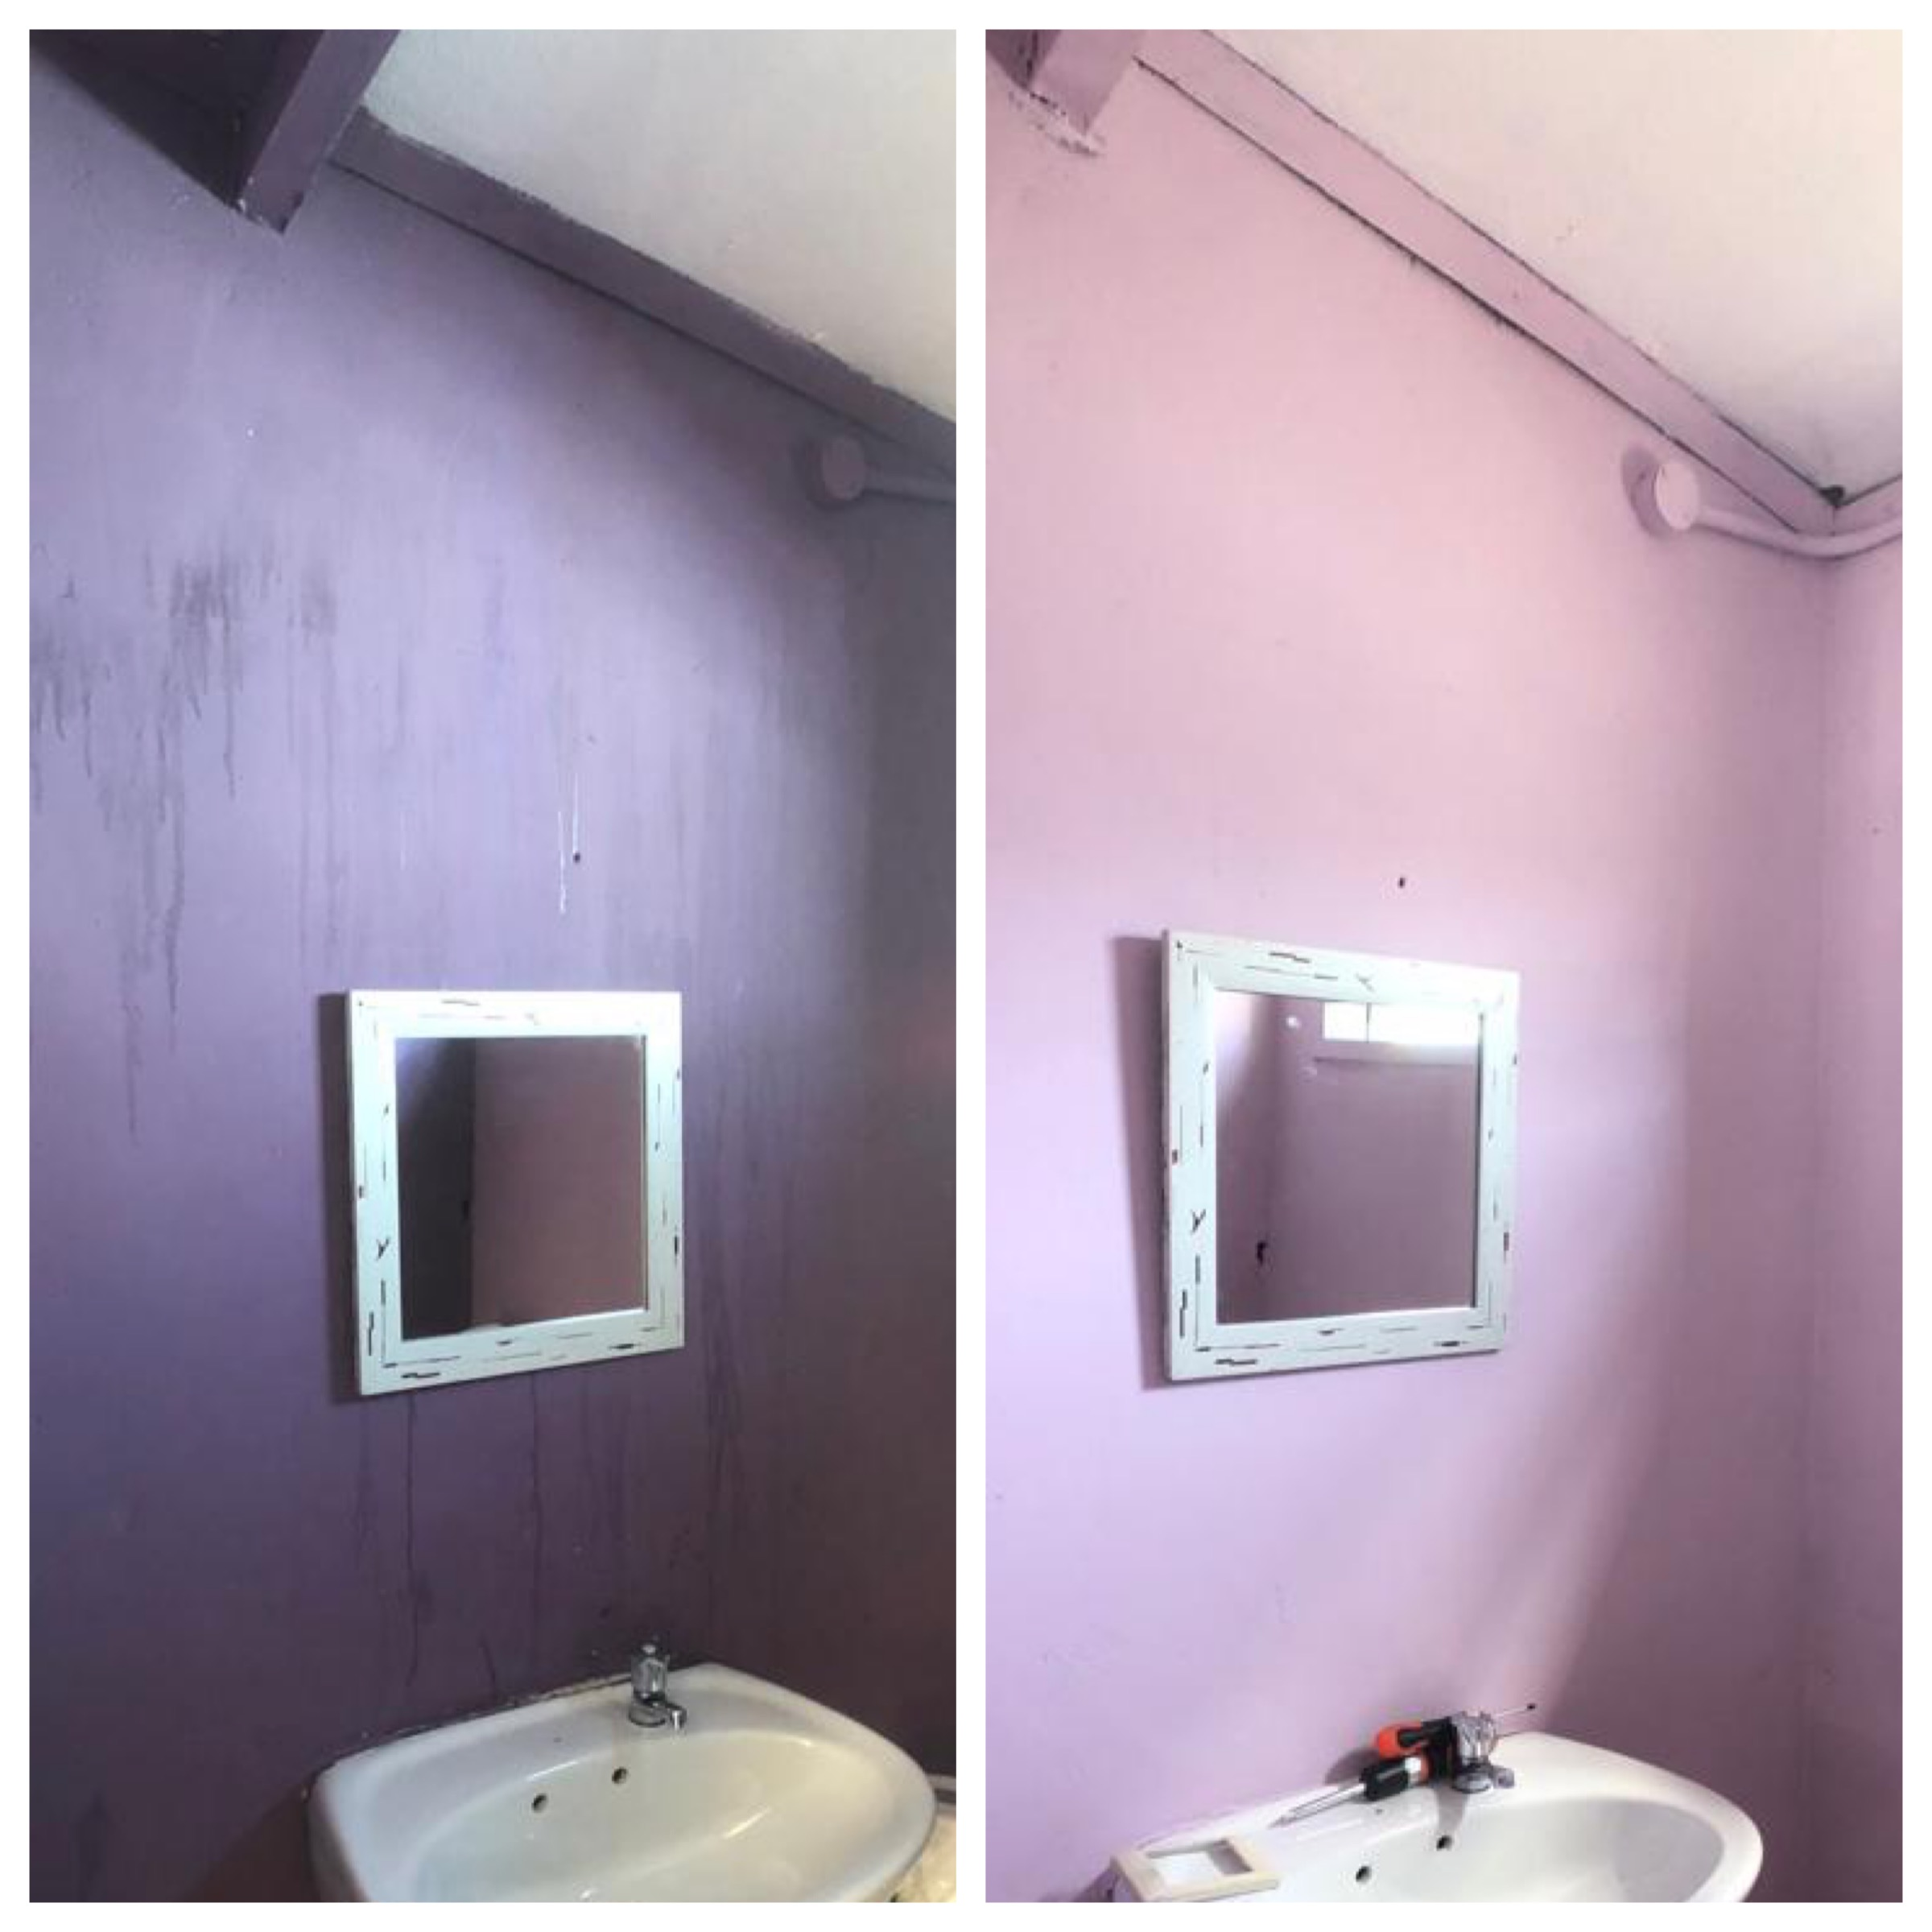 Anjelica worked in this bathroom tirelessly. BEFORE AND AFTER!! Thabisa was thrilled to have a bright bathroom in her office! Kyle and Jack also changed out light fixtures and fixed the switch so they would actually turn on. What a team!